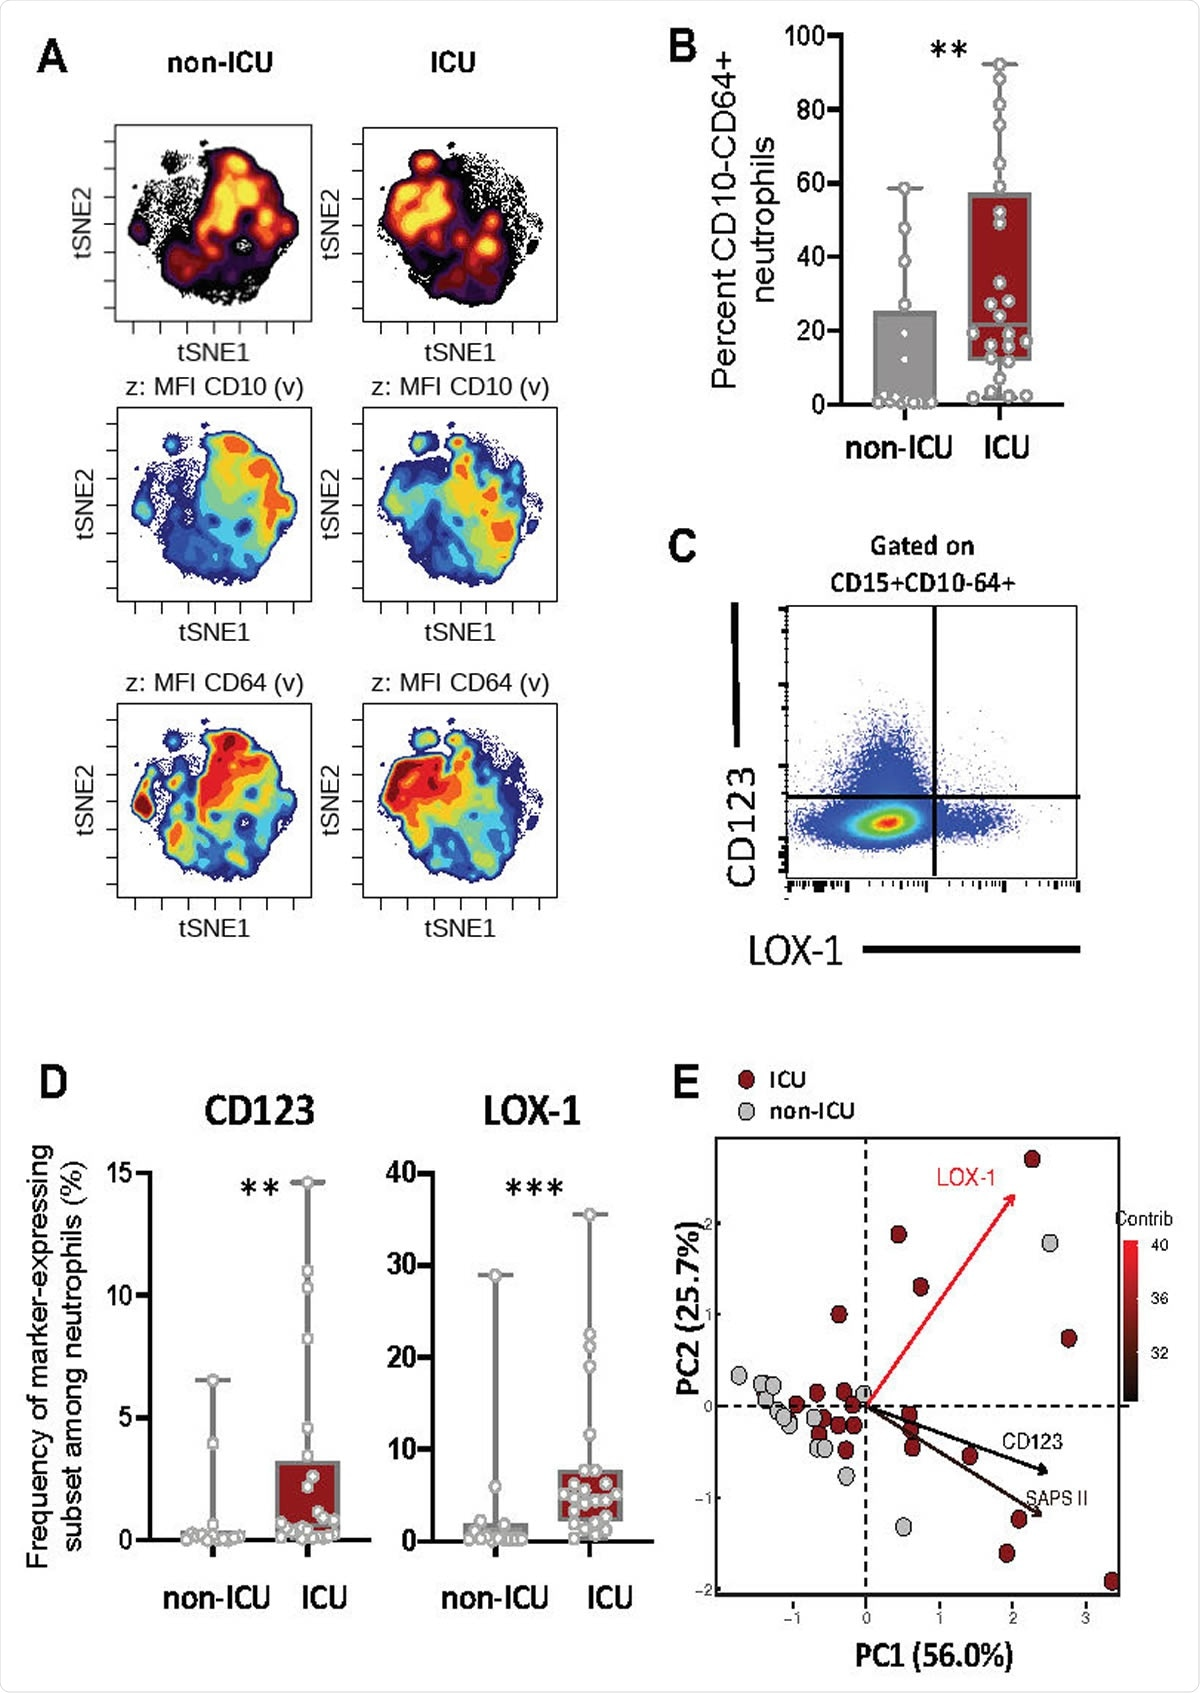 Severe COVID-19 patients displayed increased immature neutrophil subsets expressing CD123 or LOX-1. (A) viSNE analysis was performed on neutrophils from all samples with cells organized along t-SNE-1 and t-SNE-2 according to per-cell expression of CD15, CD10, CD64, LOX-1, CD123 and PD-L1. Cell density for the concatenated file of each patient's group (ICU vs Non-ICU) is shown on a black to yellow heat scale. Neutrophils' CD10, CD64 markers expression is presented on a rainbow heat scale in the t-SNE map of each group concatenated file. (B) Box plots representation (min to max distribution) of CD10- CD64+ neutrophil subset abundancy among total neutrophils of each group samples. (C) Representative expression of LOX1 and CD123 on CD10- CD64+ neutrophils. (D) Abundancy of CD10- CD64+ neutrophil expressing CD123 or LOX-1 in ICU and non-ICU patients' groups. identify the median and min to max distribution. Nonparametric Mann-Whitney test was used to compare differences in cellular abundance of neutrophil subsets between groups, with significance defined by a p-value < 0.05: * for p < 0.05; ** for p < 0.01; *** for p < 0.001. (E) Principal component analysis (PCA) using LOX-1+, CD123+ CD10- CD64+ neutrophil abundancy and SAPS II variables on sample sizes: